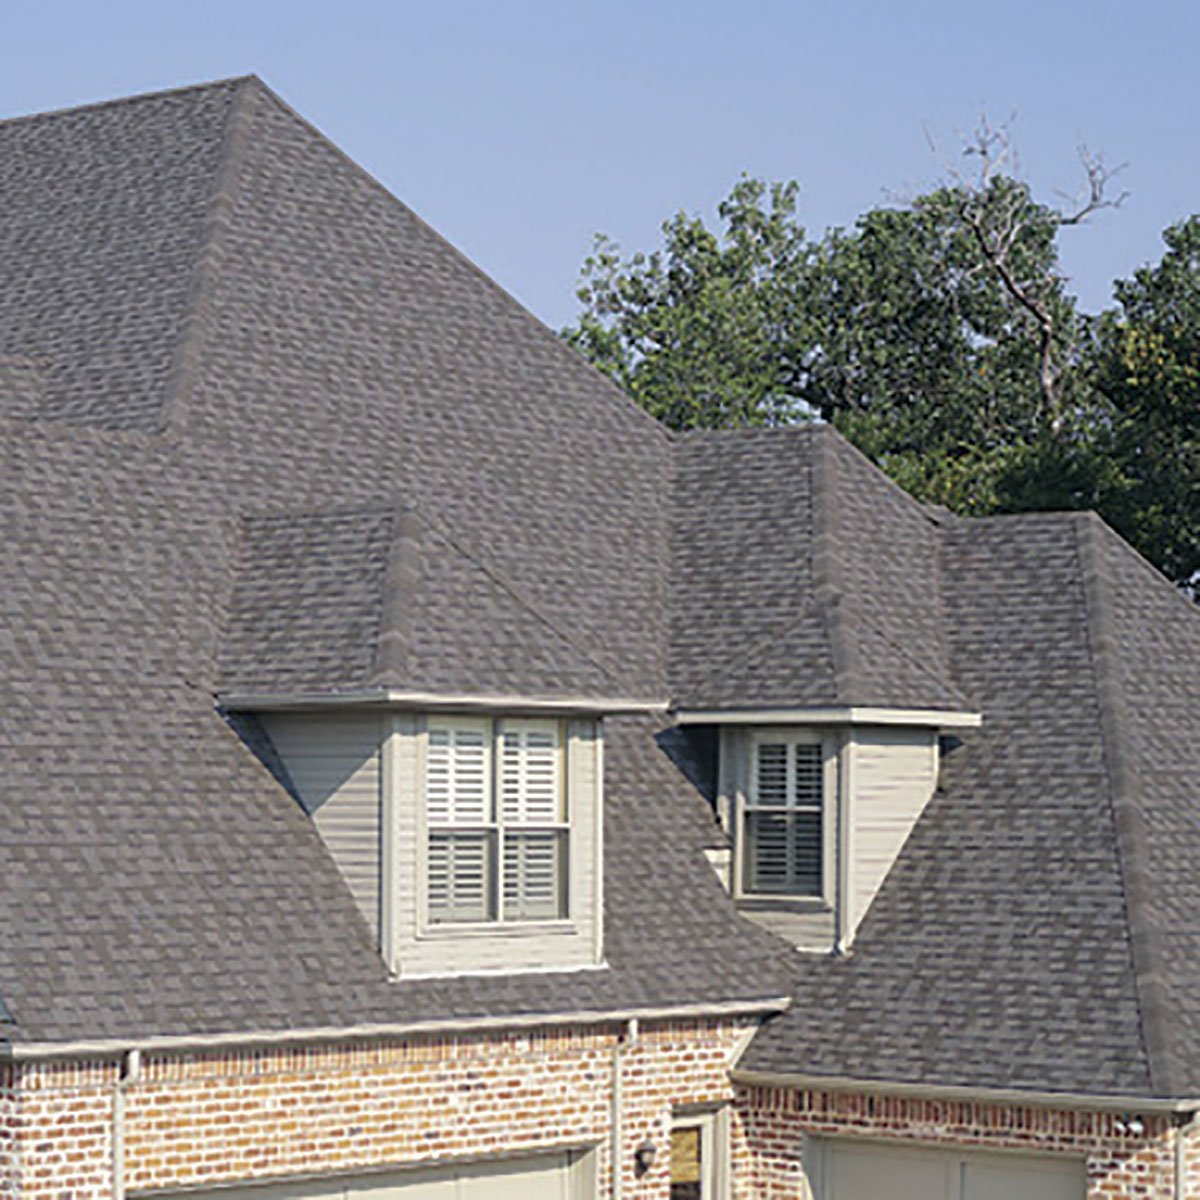 Heritage Shingles | Wooden Shim | Heritage Roofing Shingles